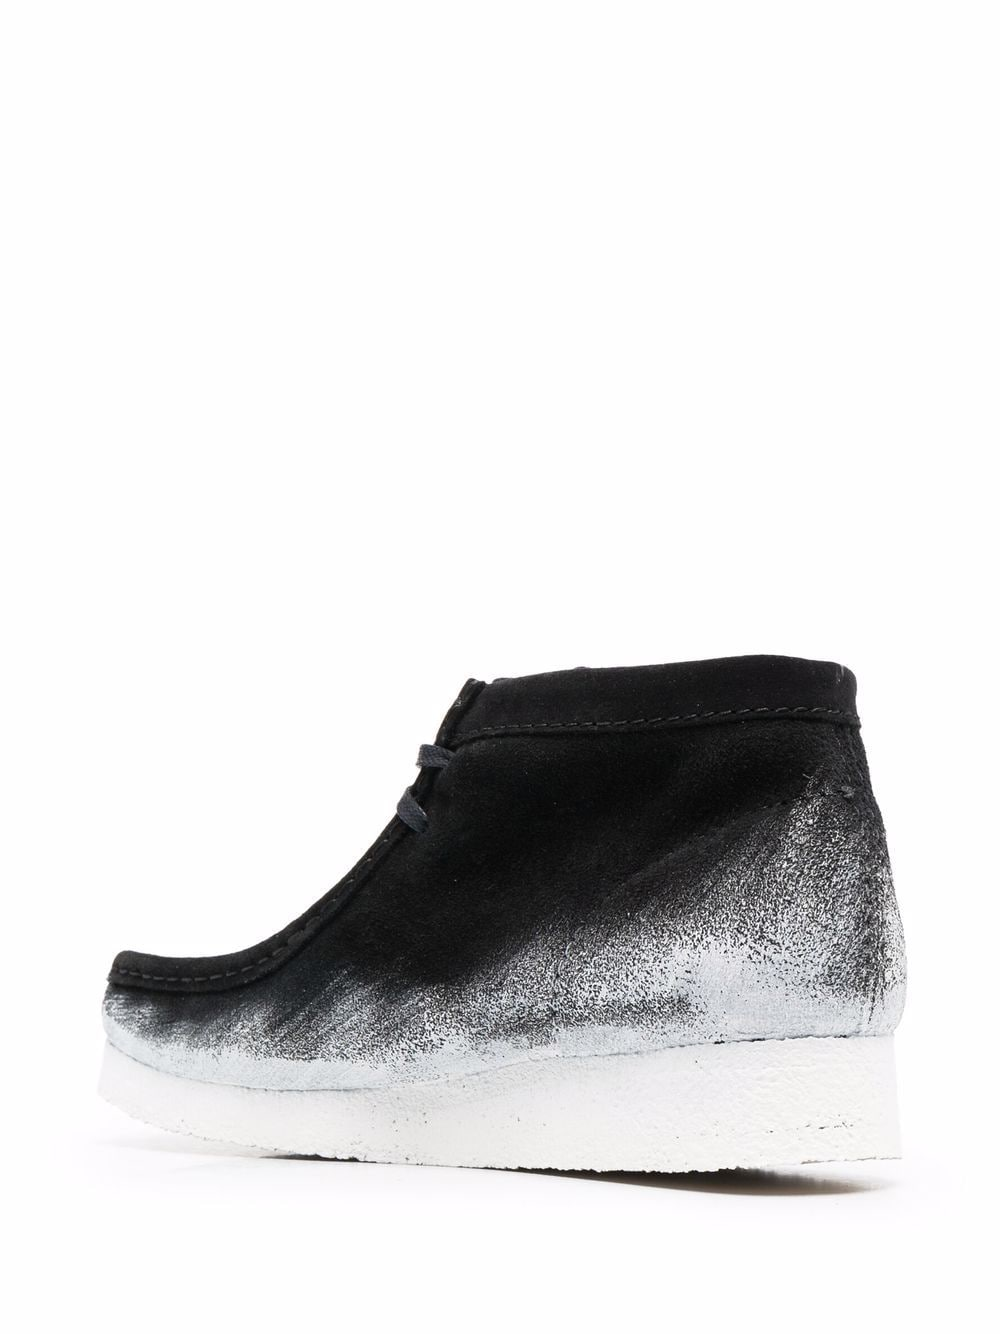 Wallabee Boot Black Leather Man CLARKS | Boots | 26163077BLACK